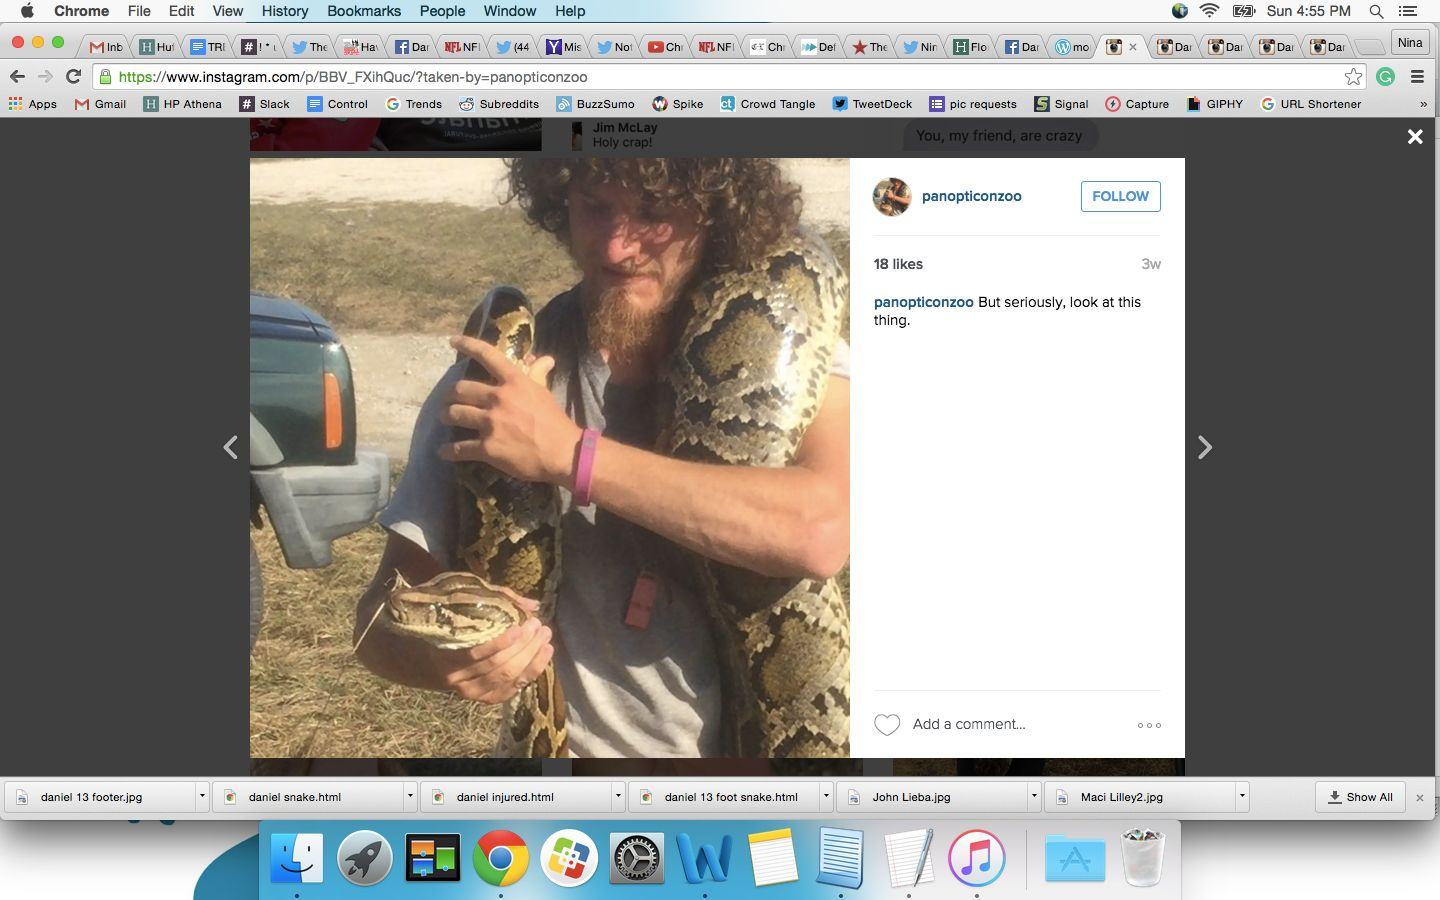 Daniel Moniz is seen holding one of his catches during the Python Challenge in the Florida Everglades.